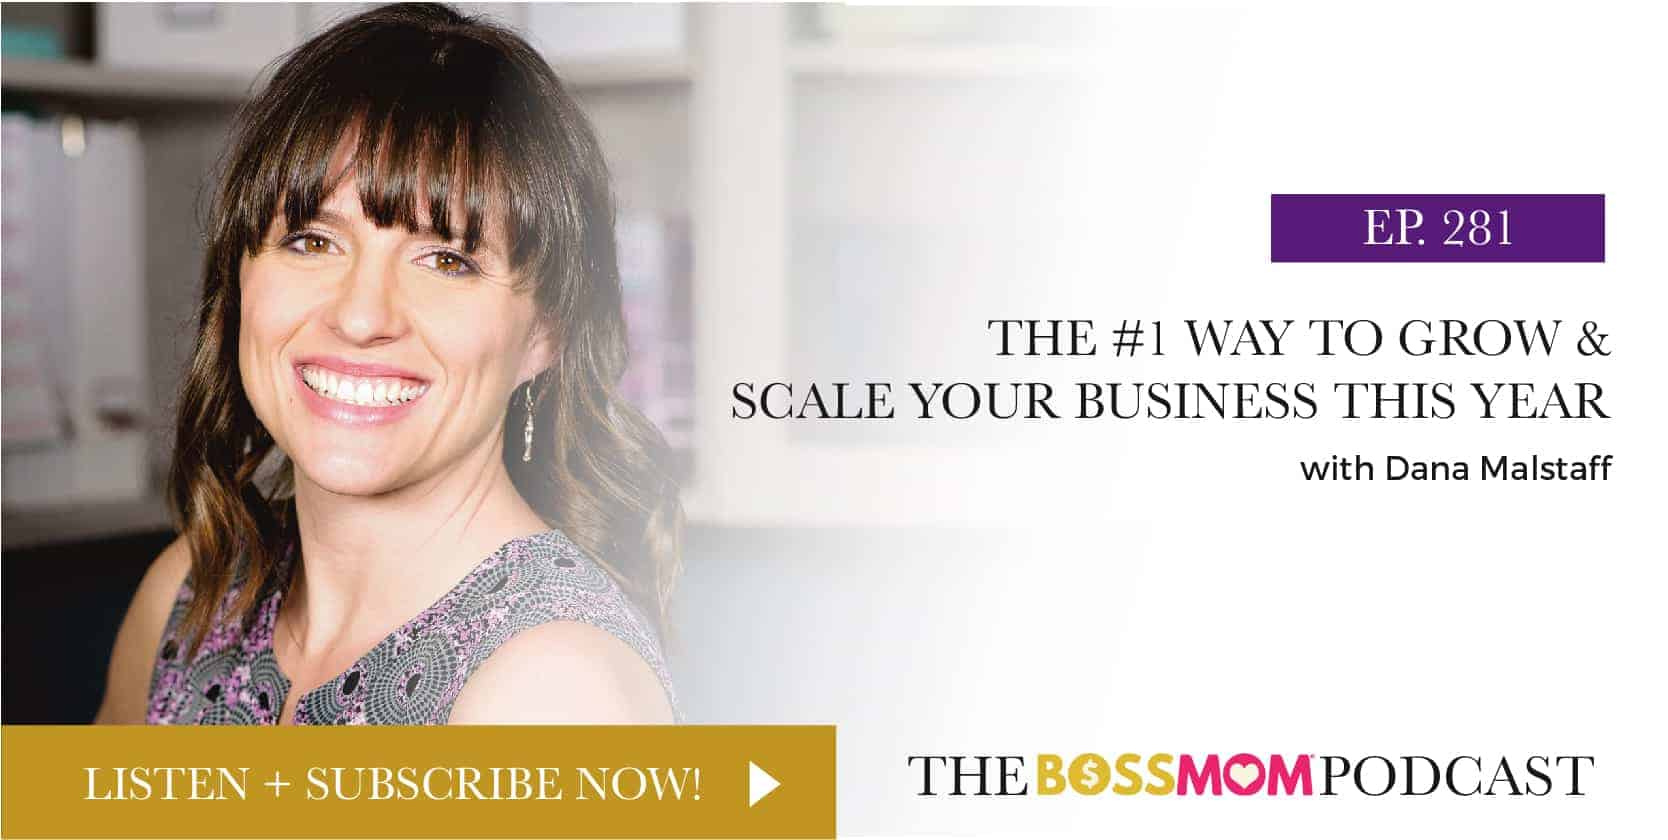 Episode 281: The #1 Way to Grow & Scale Your Business This Year